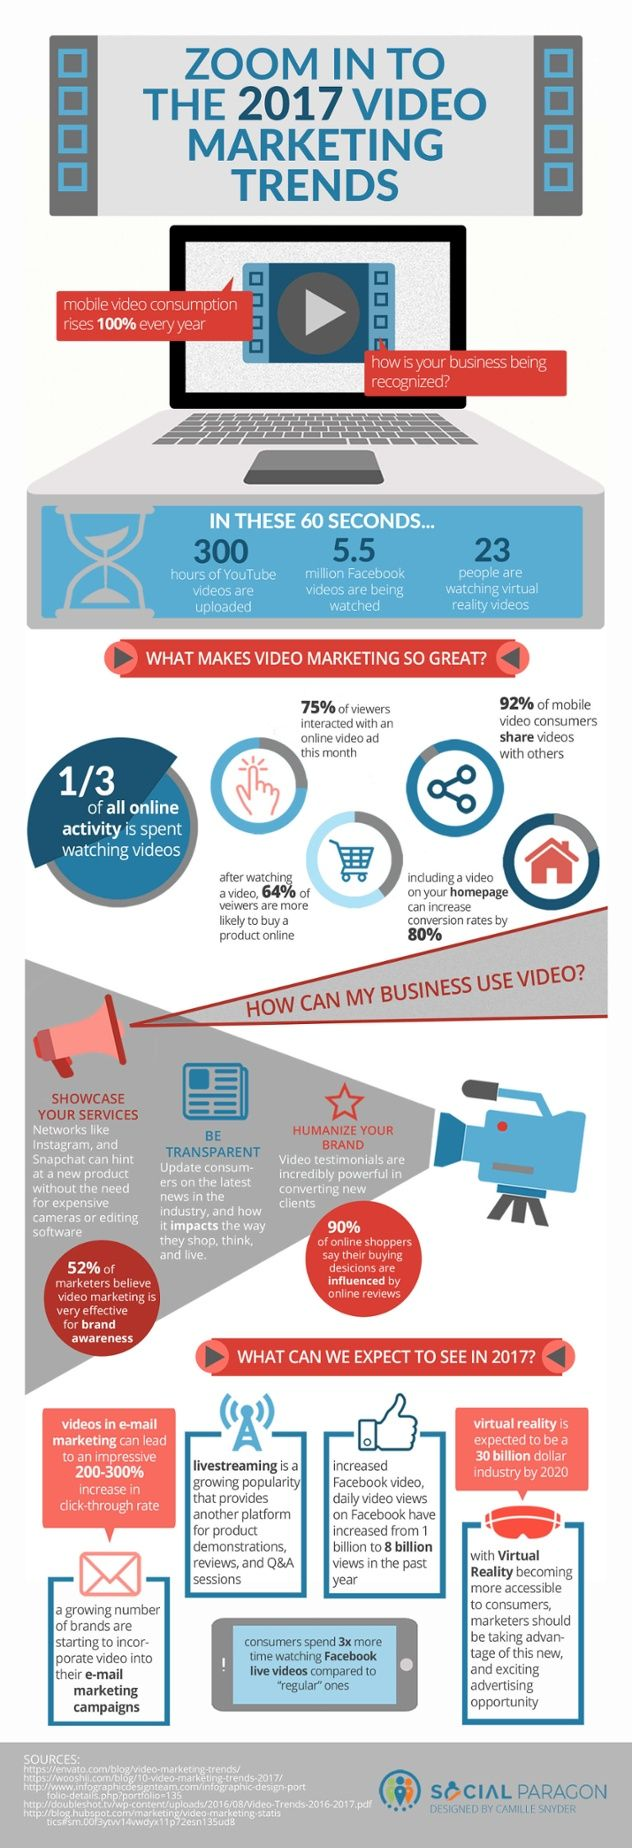 Video_Marketing_Trends_Infographic.jpg